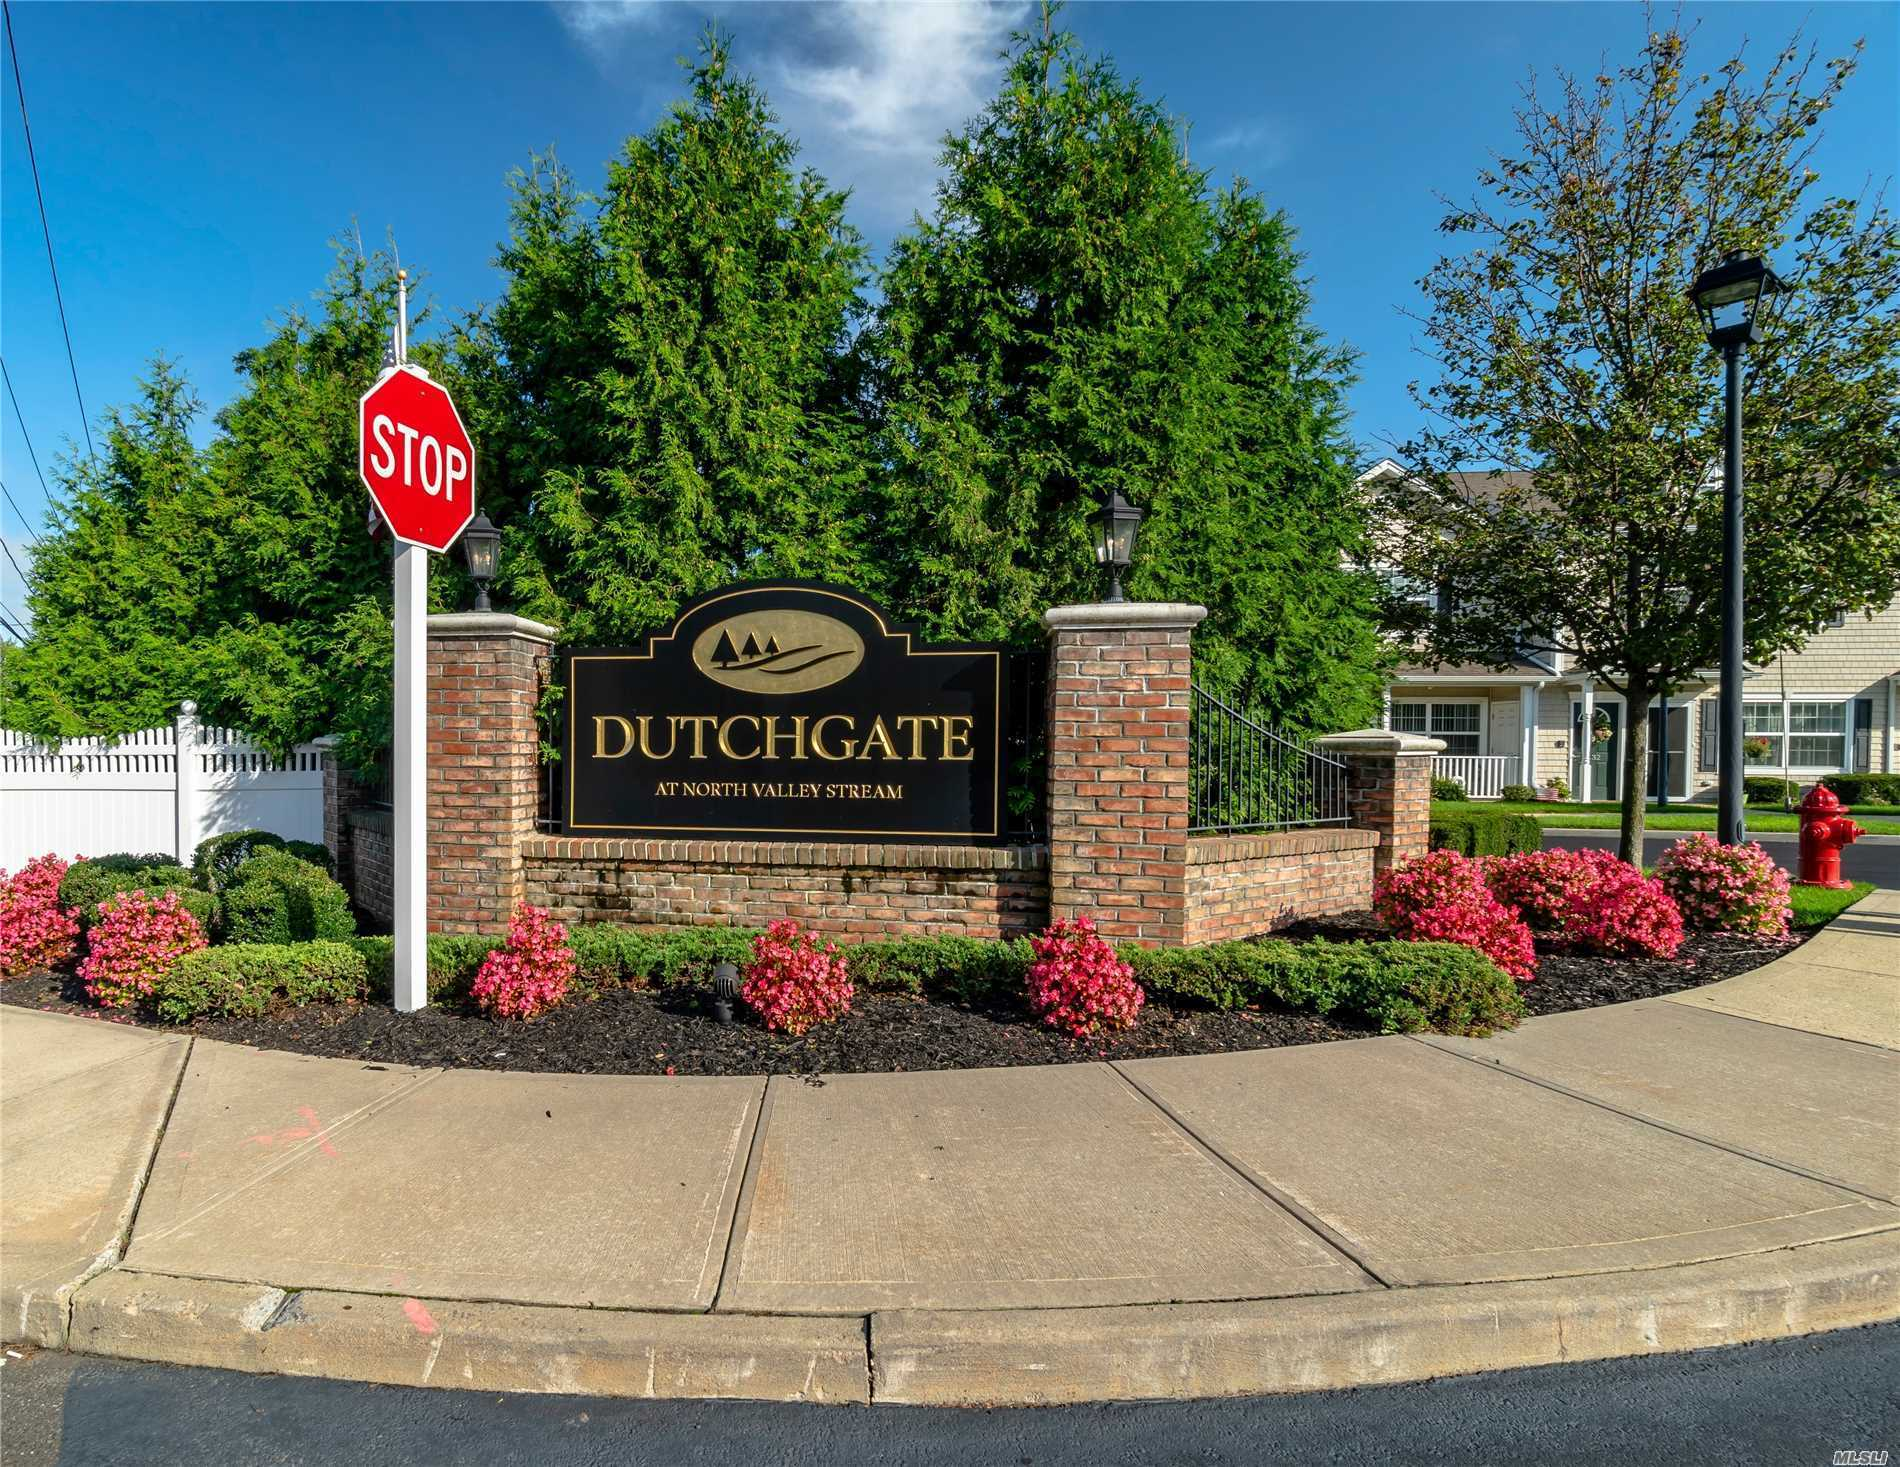 55+ Gated Community. Open Concept. Livingroom/Diningroom With Vaulted Ceilings,  Kitchen With Stainless Steel Appliances, Granite Counter-Tops. Master Bedroom W/Full Bathroom. Additional Full Bathroom,  2nd Bedroom W/Terrace. Central Air. Plenty Of Closet Space. Washer/Dryer In Unit. Enjoy The Amenities - Heated Pool, Exercise Room, Library. Unit Has Been Well Maintained. Appliances Under Home Warranty